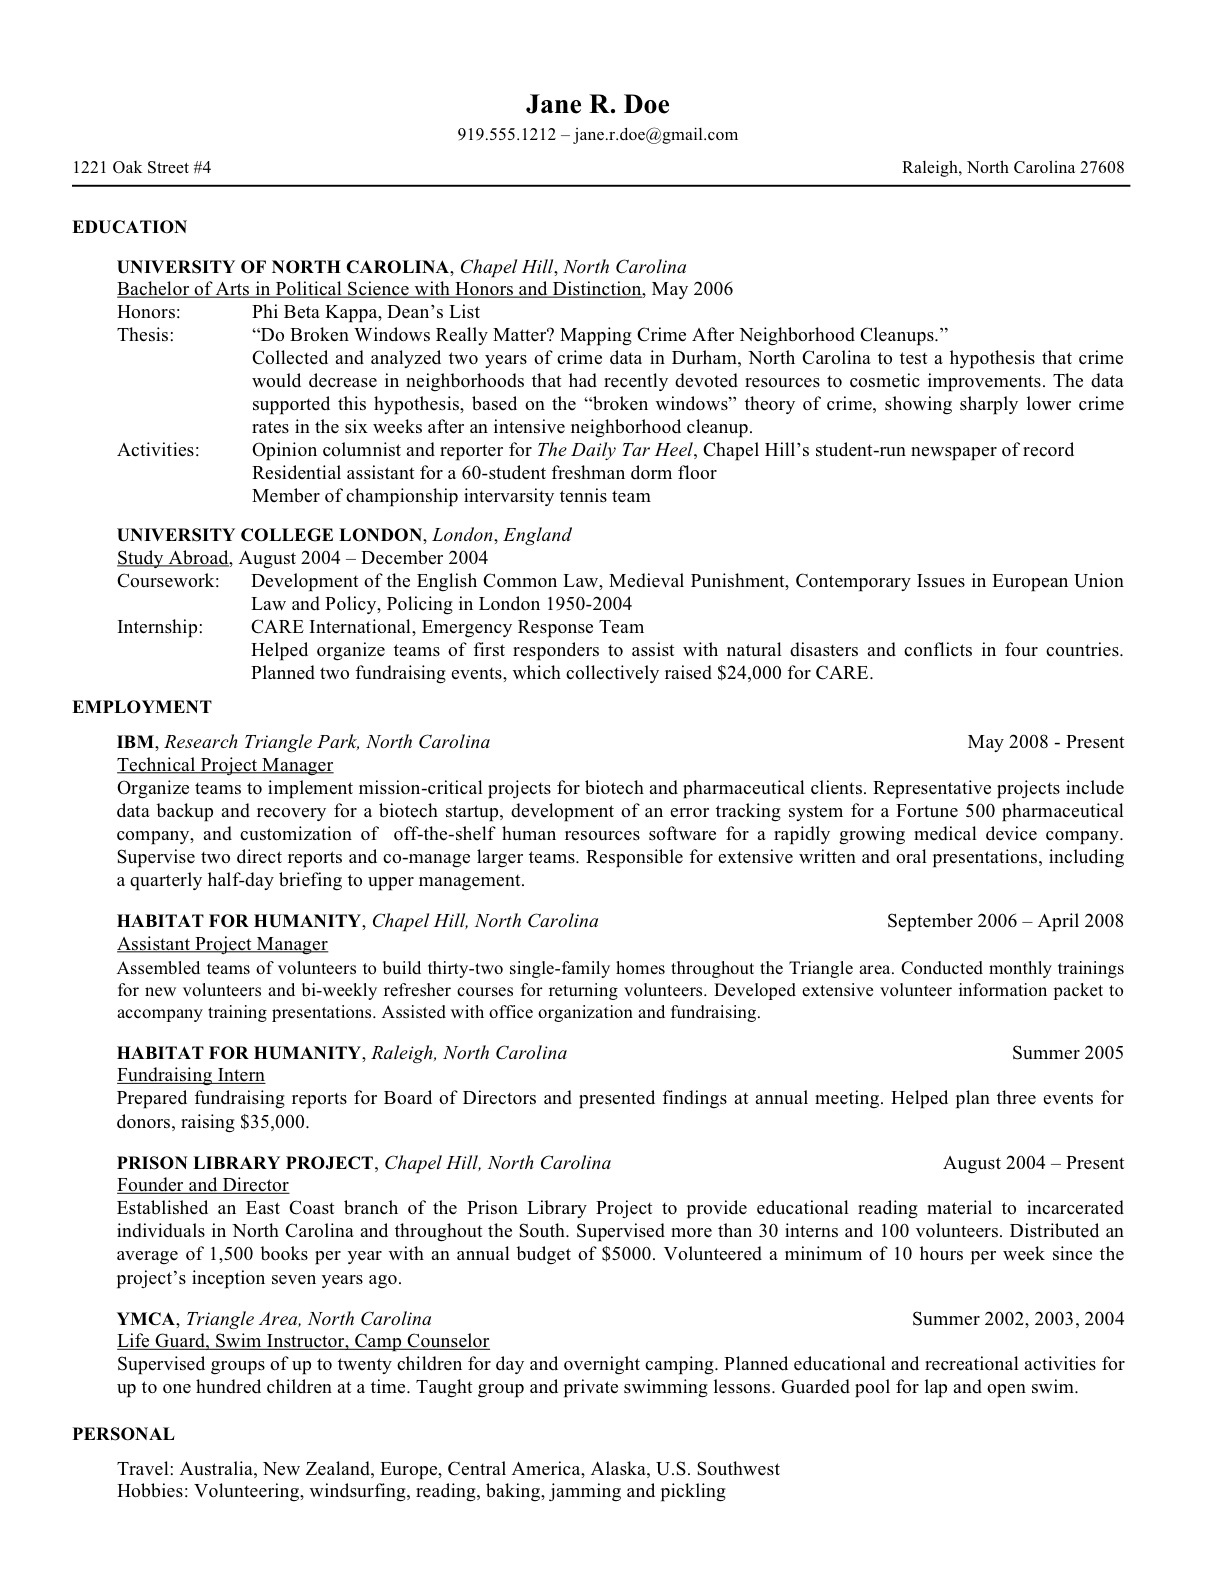 law school resume templates prepping your for of university at skills and activities Resume Skills And Activities Resume Example